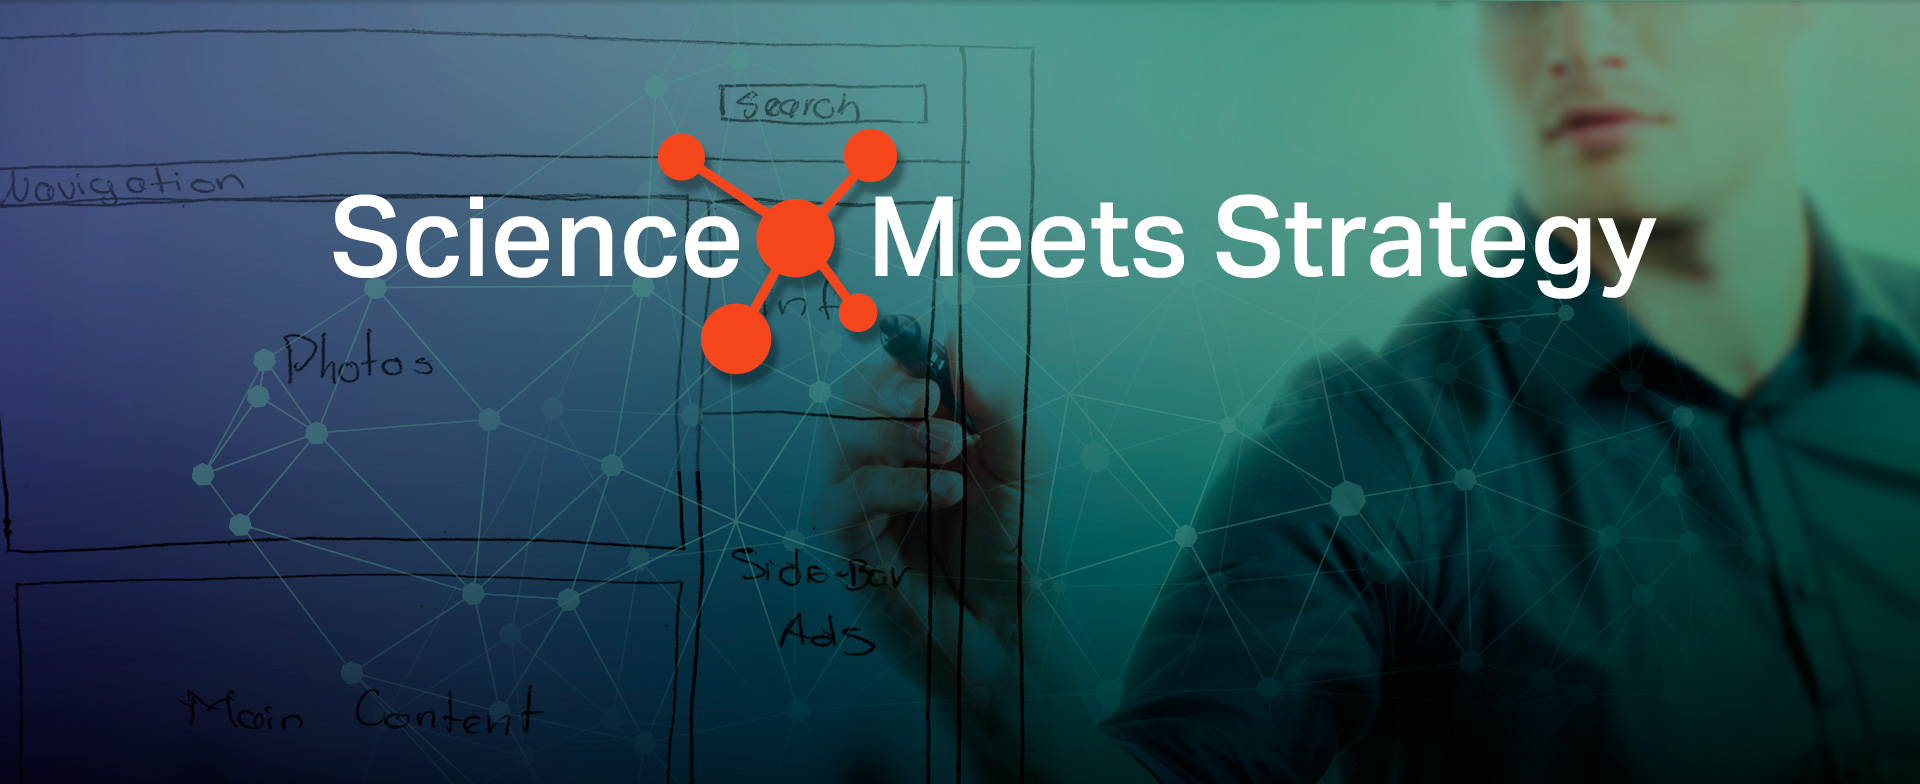 Science Meets Strategy